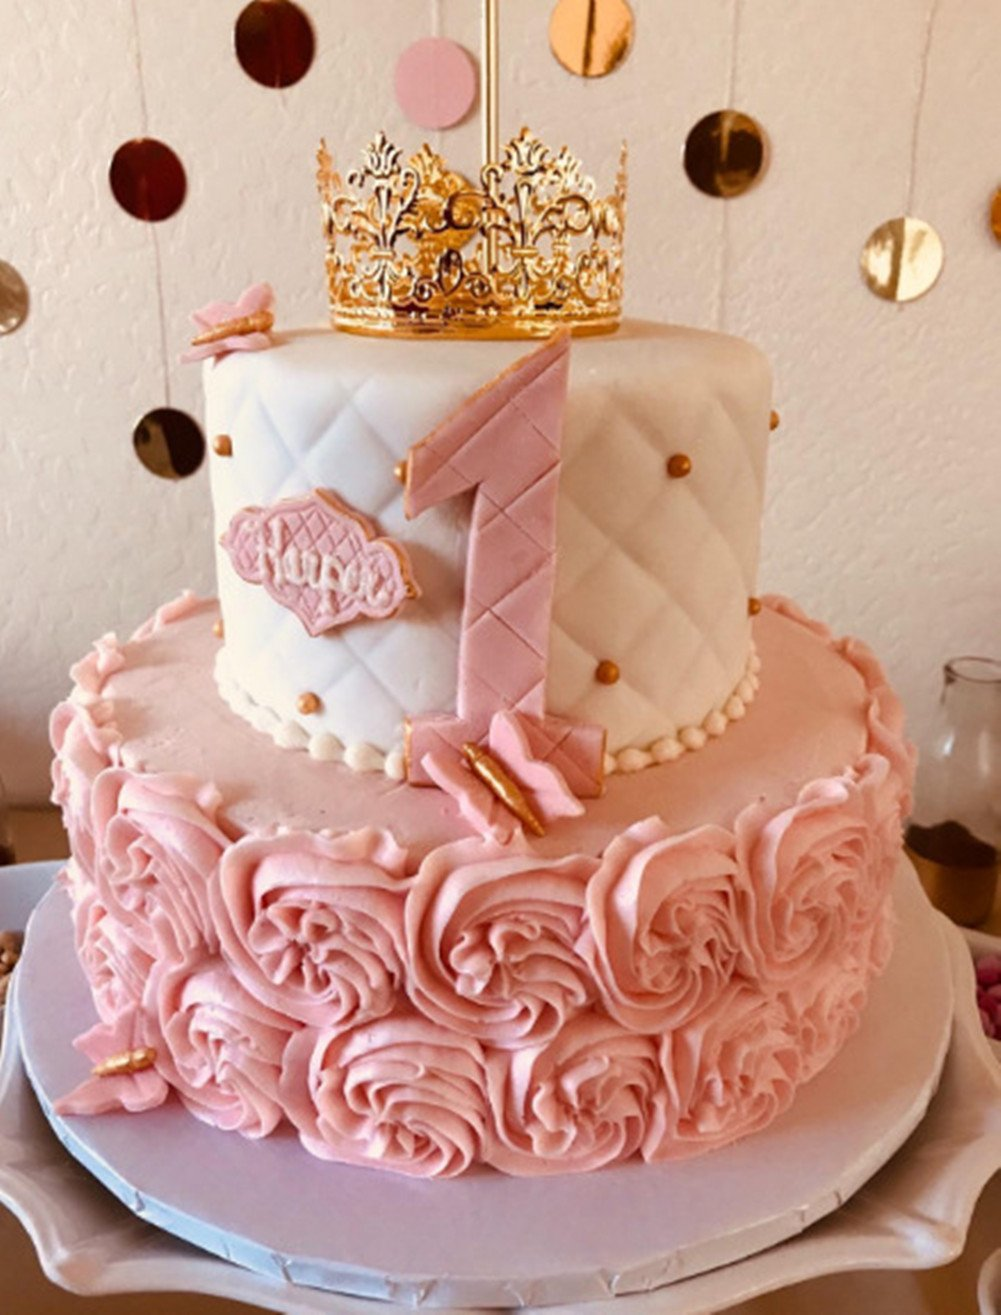 HYOUNINGF Gold Crown Cake Topper Elegant Cake Decoration For King, Queen, Prince And Princess Themed Parties, Royal Birthday Cake Decoration by HYOUNINGF (Image #4)